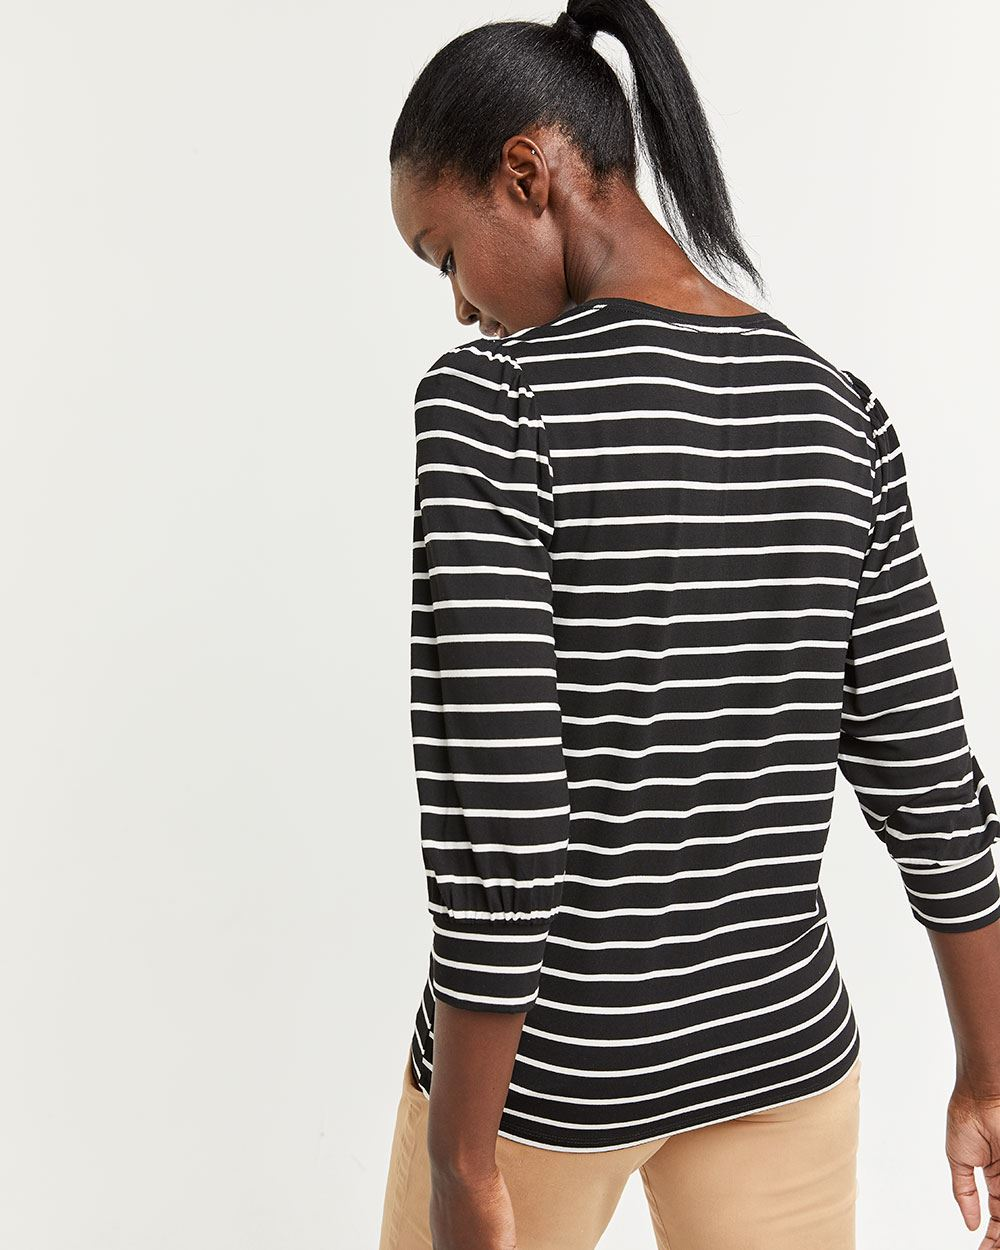 Striped Tee with Puffed Sleeves